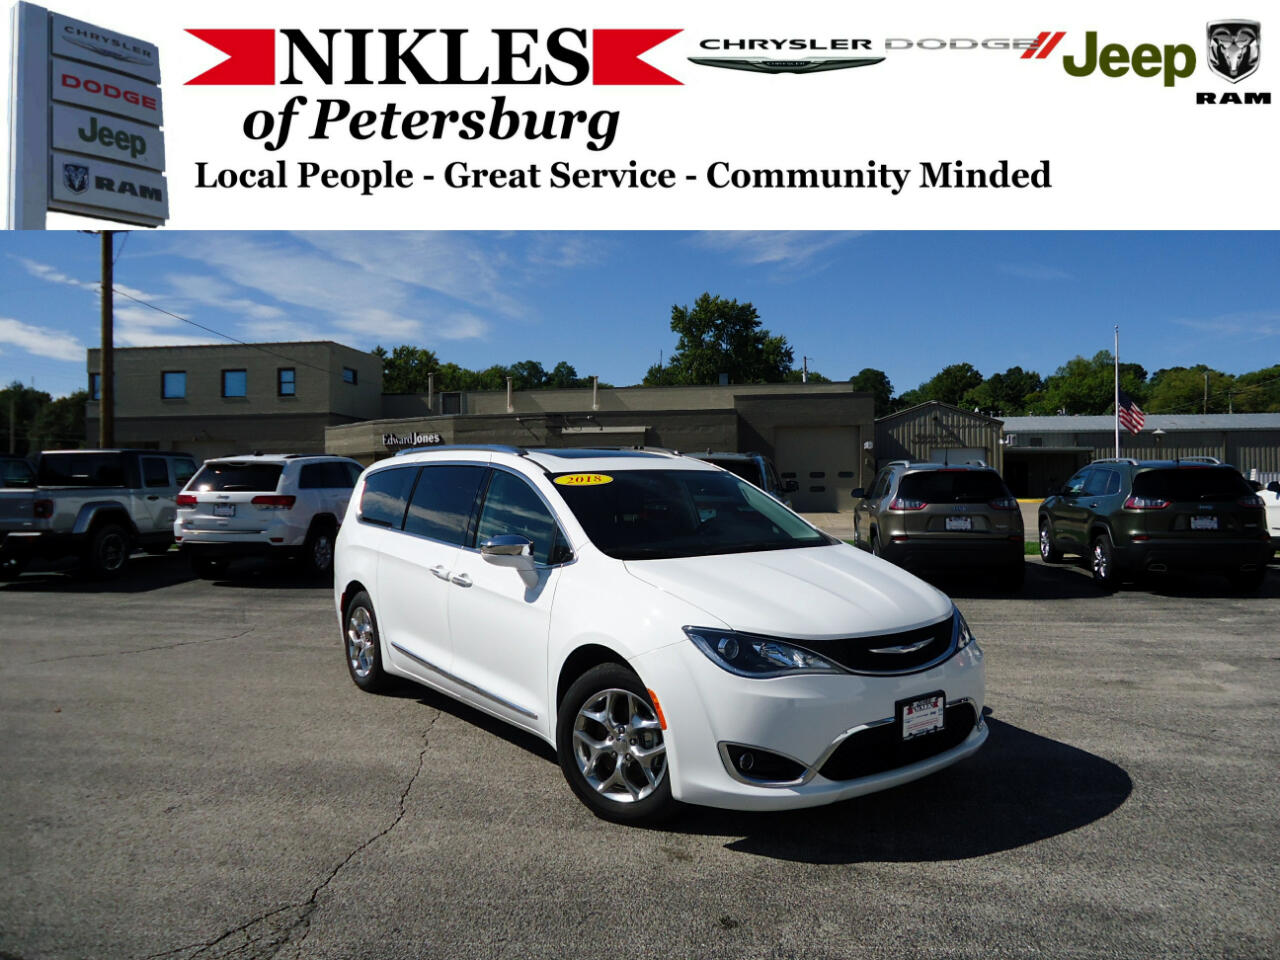 Chrysler Pacifica 4dr Wgn Limited FWD 2018